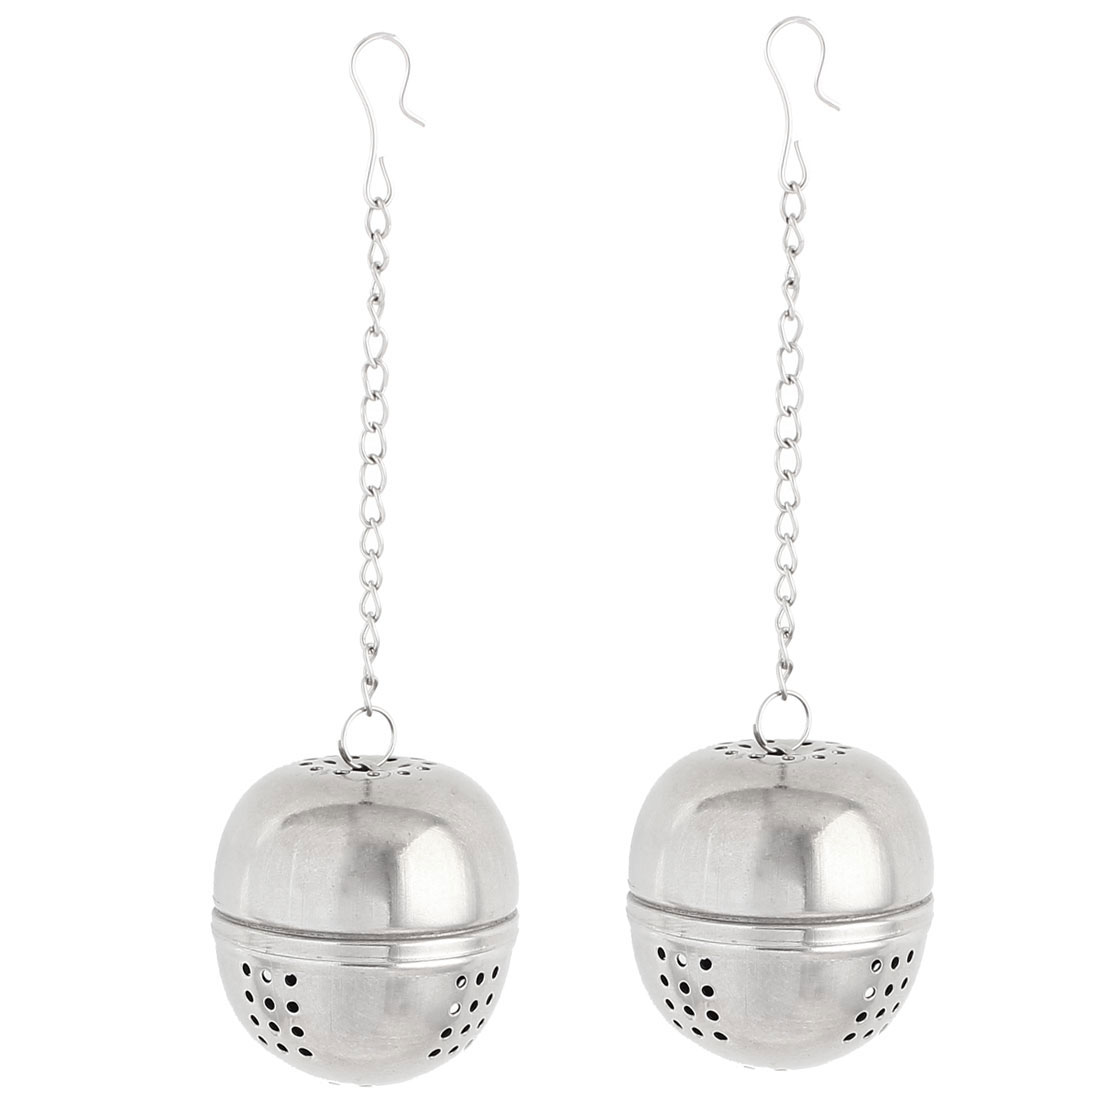 2pcs 45mm Dia Stainless Steel Ball Strainer Tea Leaf Spice Perfume Infuser